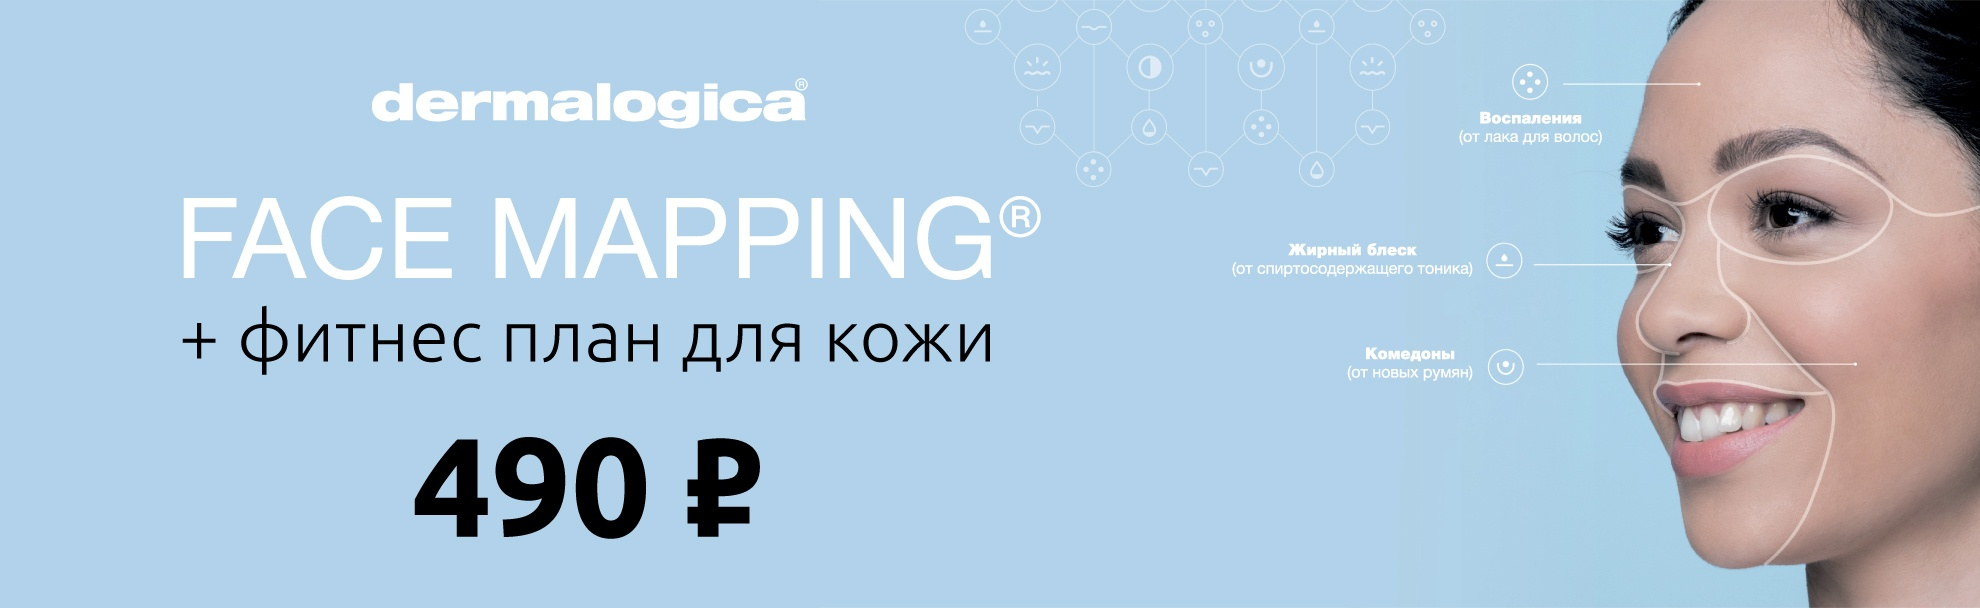 Face mapping + фитнес план для кожи